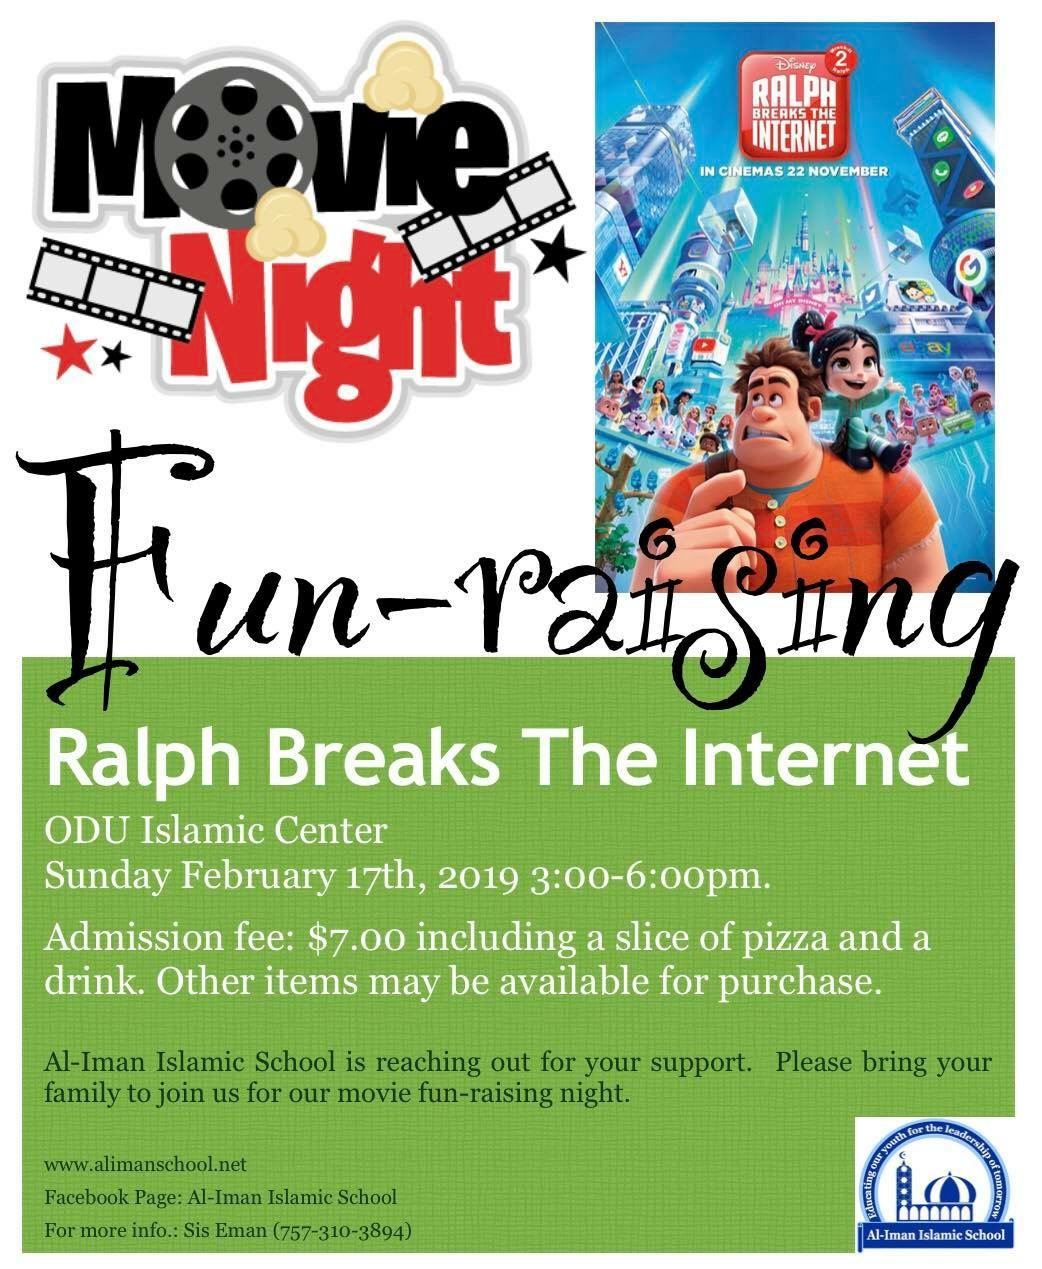 Movie Fun-Raising Night Flyer